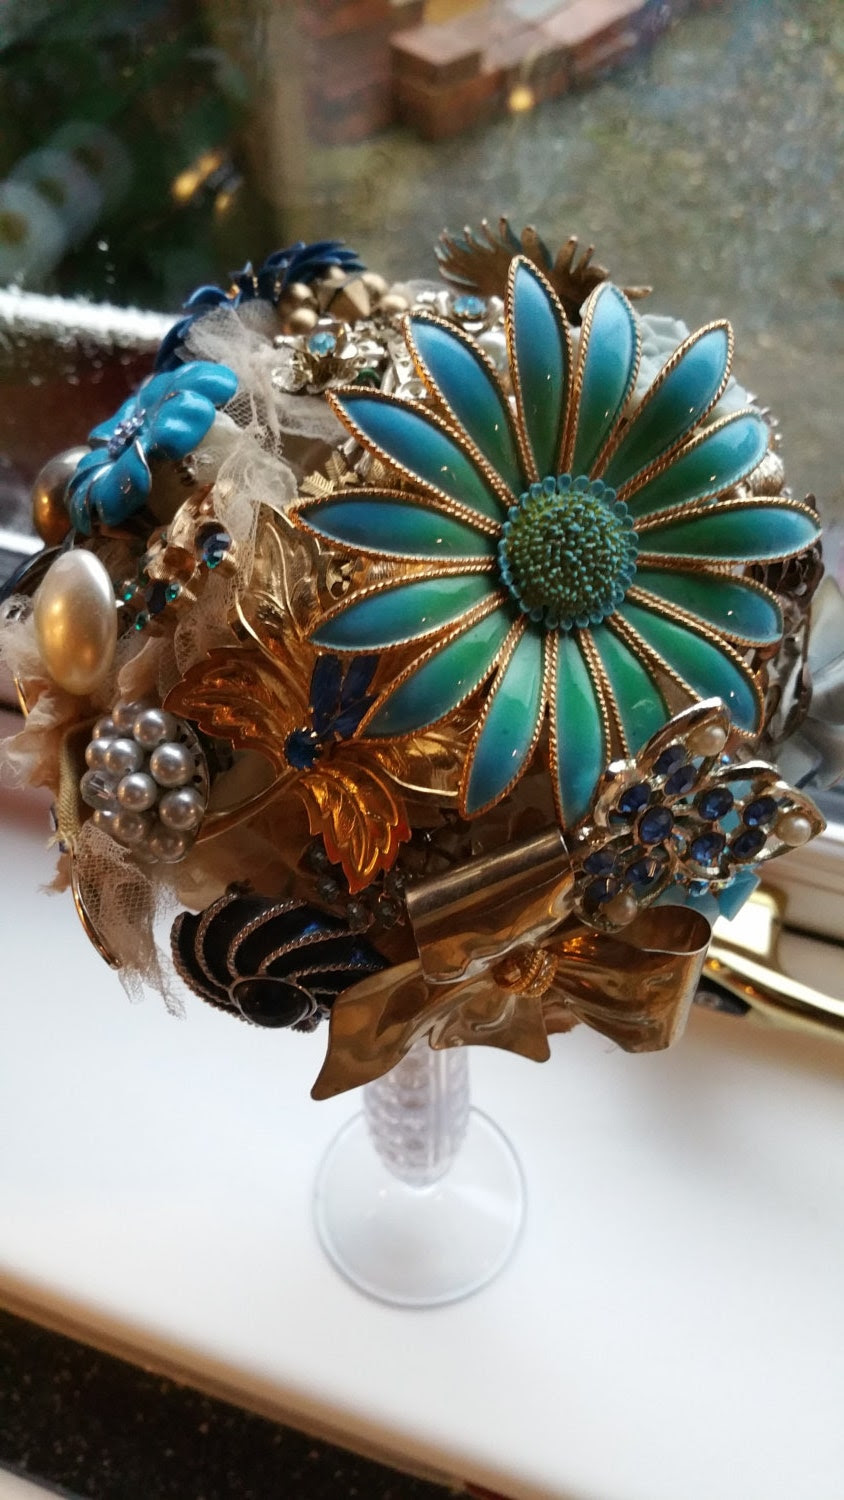 Stunning Blue & Gold Large Wedding Brooch Bouquet - Handmade with Love